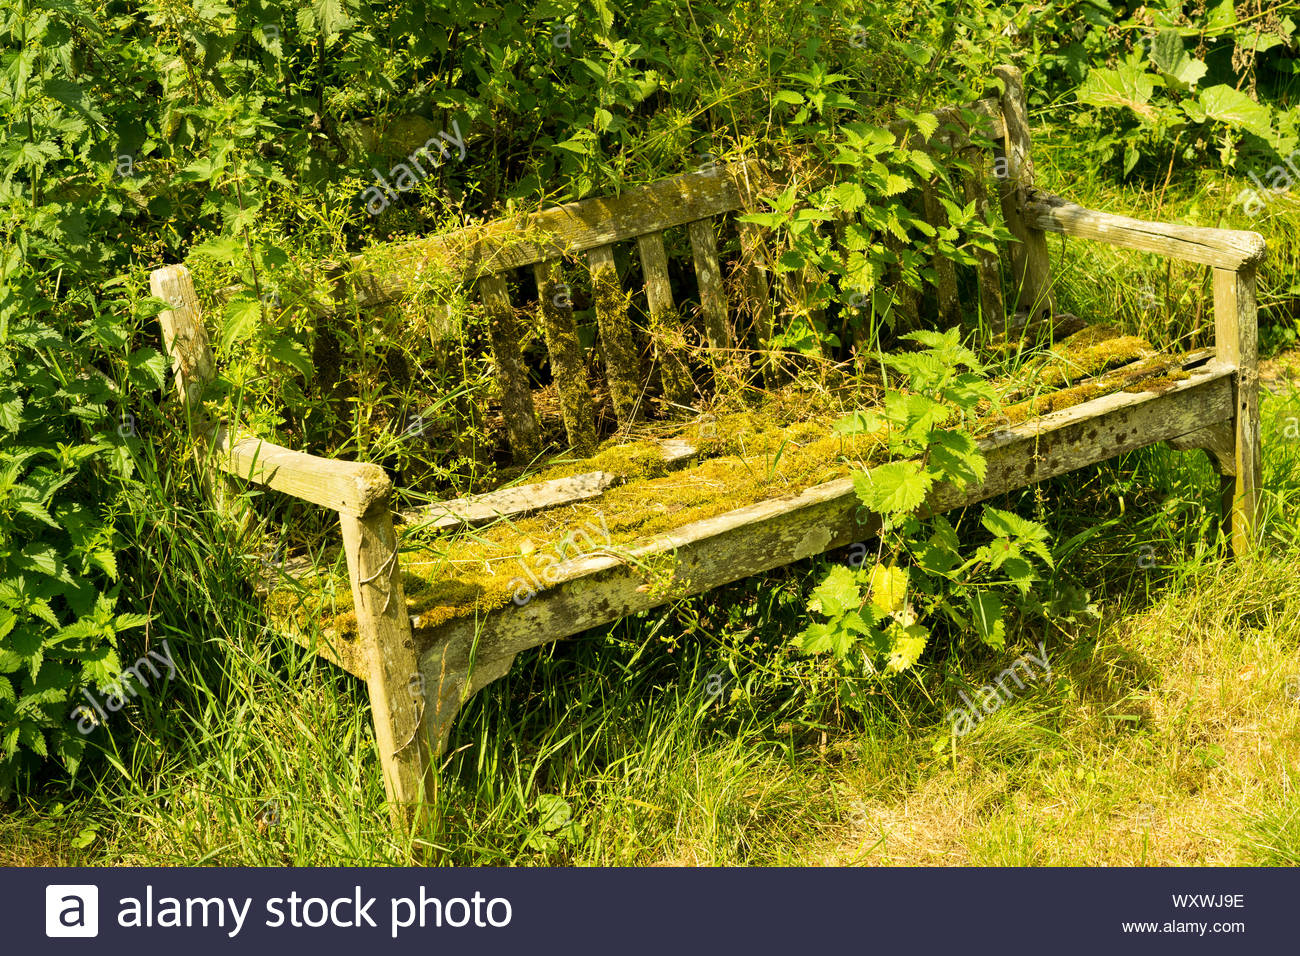 Old Overgrown Garden Bench,Uk Stock Photo – Alamy Intended For Weir Garden Stools (View 24 of 25)